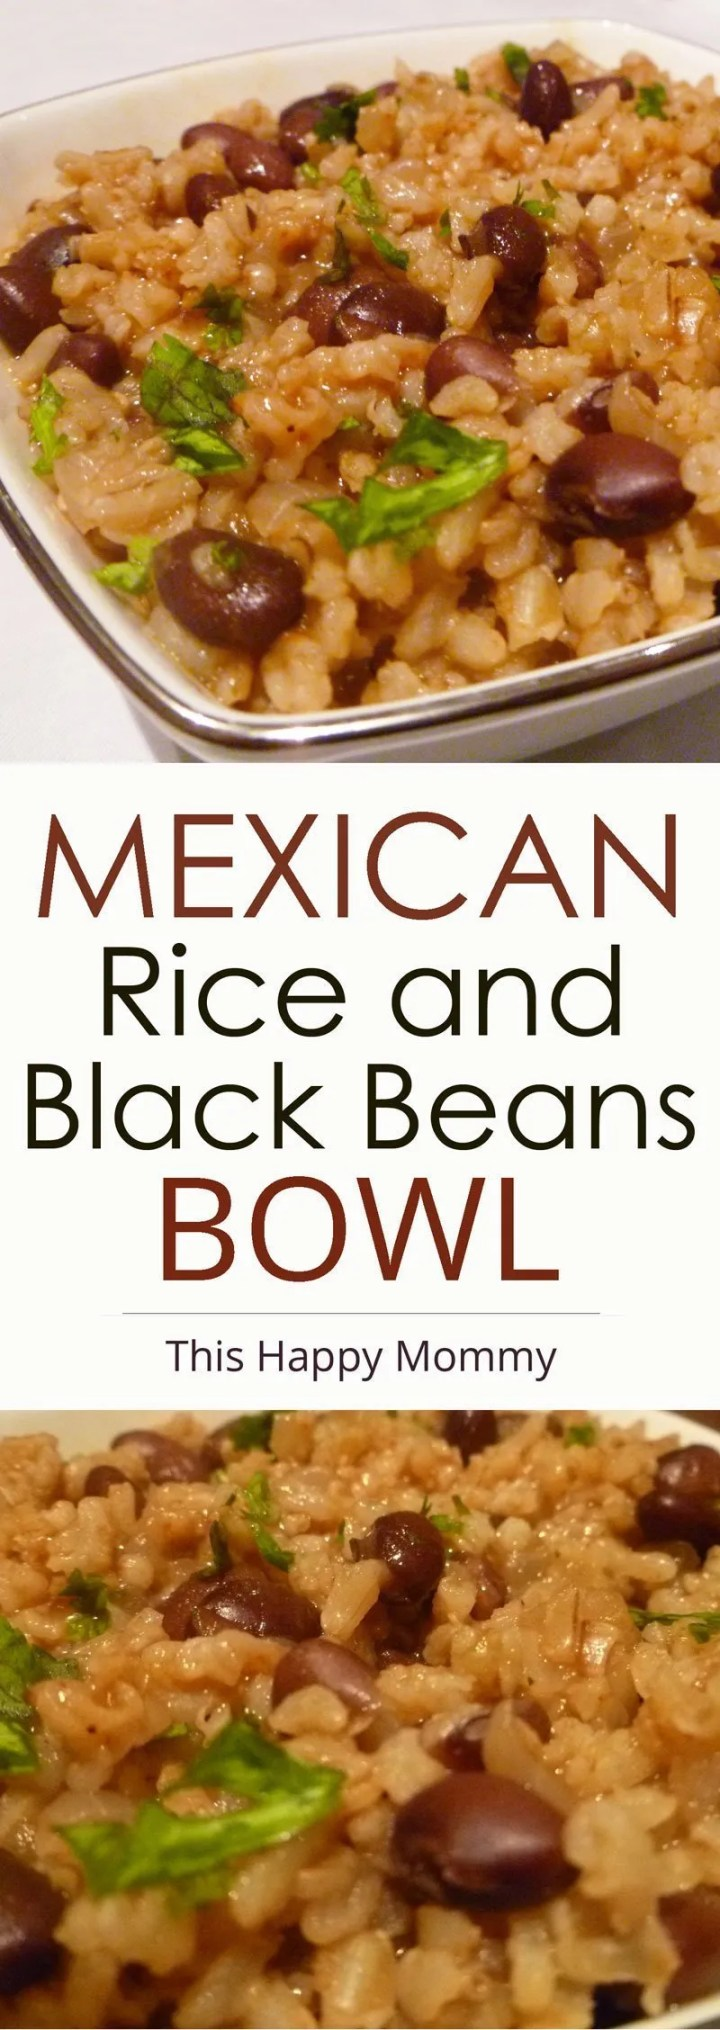 Mexican Rice and Black Beans Bowl -- A one-pot vegetarian meal that's sure to impress. Made with onions, garlic, beans and onions, this tasty meal is satisfying and delicious. Healthy Clean Eating | One Pot Meals | Healthy Vegetarian Dinner Recipes | Quick and Easy Meatless Monday | Rice Recipe for Dinner | #meatlessmonday #rice #dinnerrecipes #dinner #recipe | thishappymommy.com